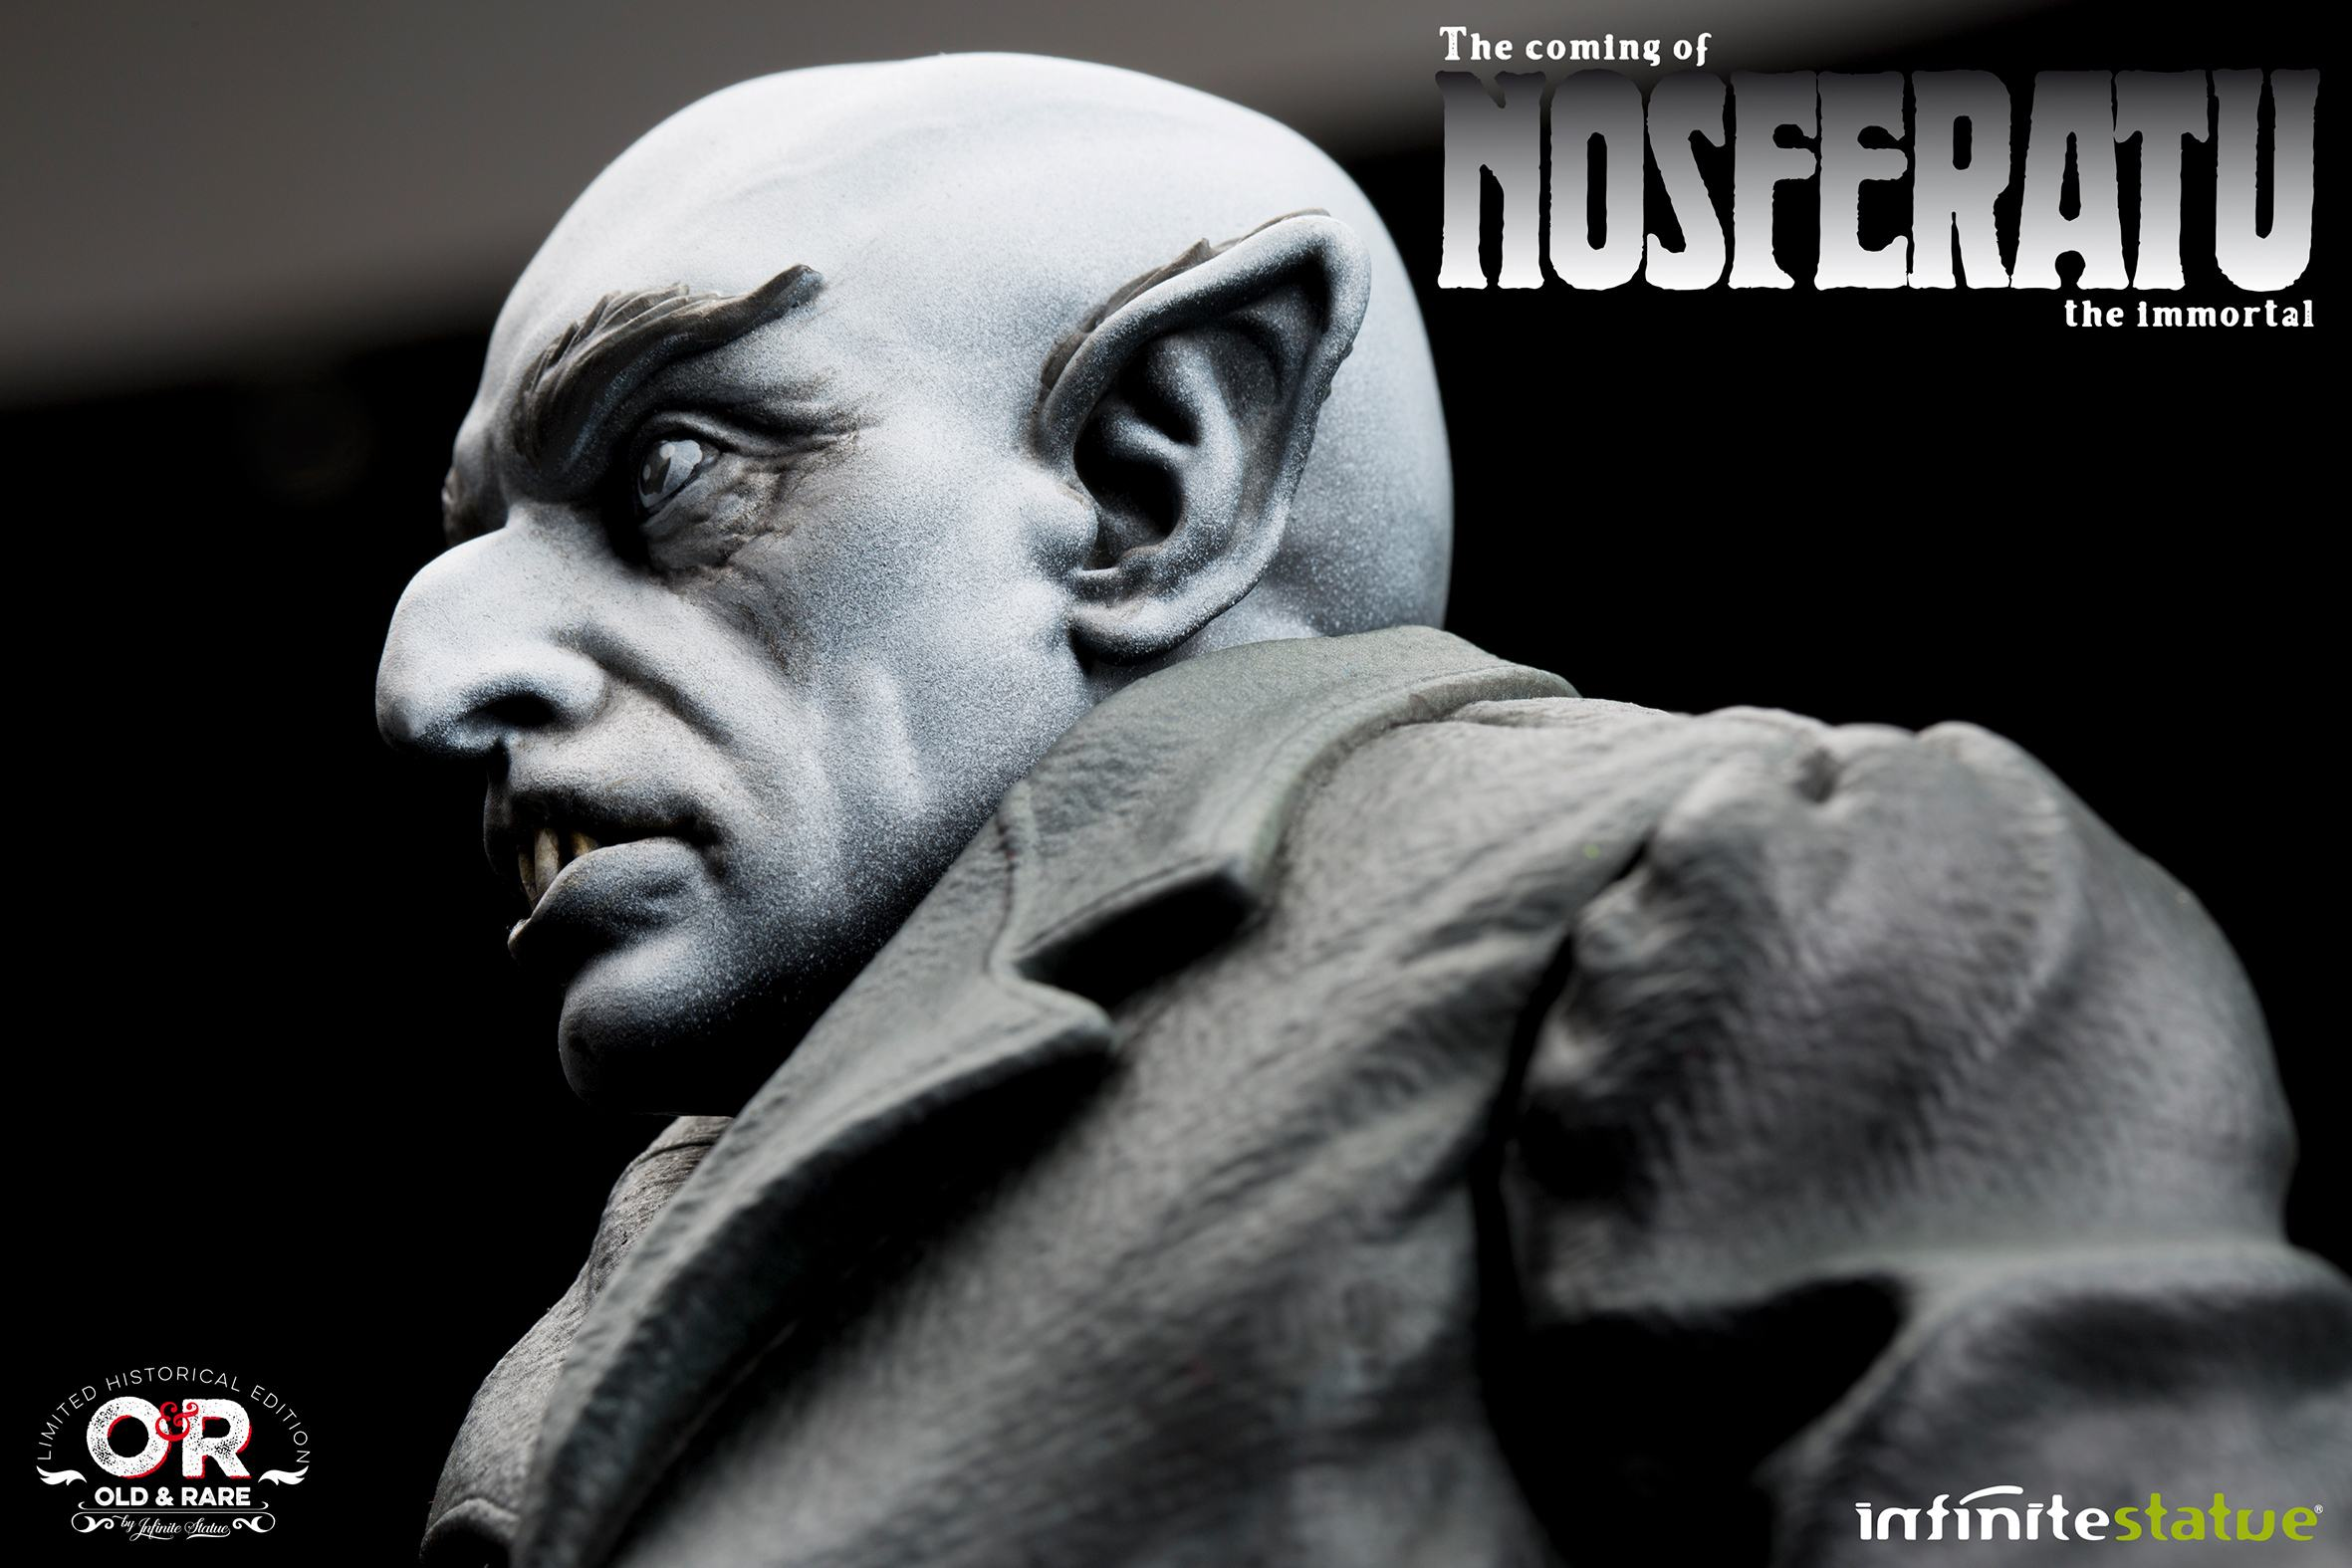 estatua-the-coming-of-nosferatu-statue-06